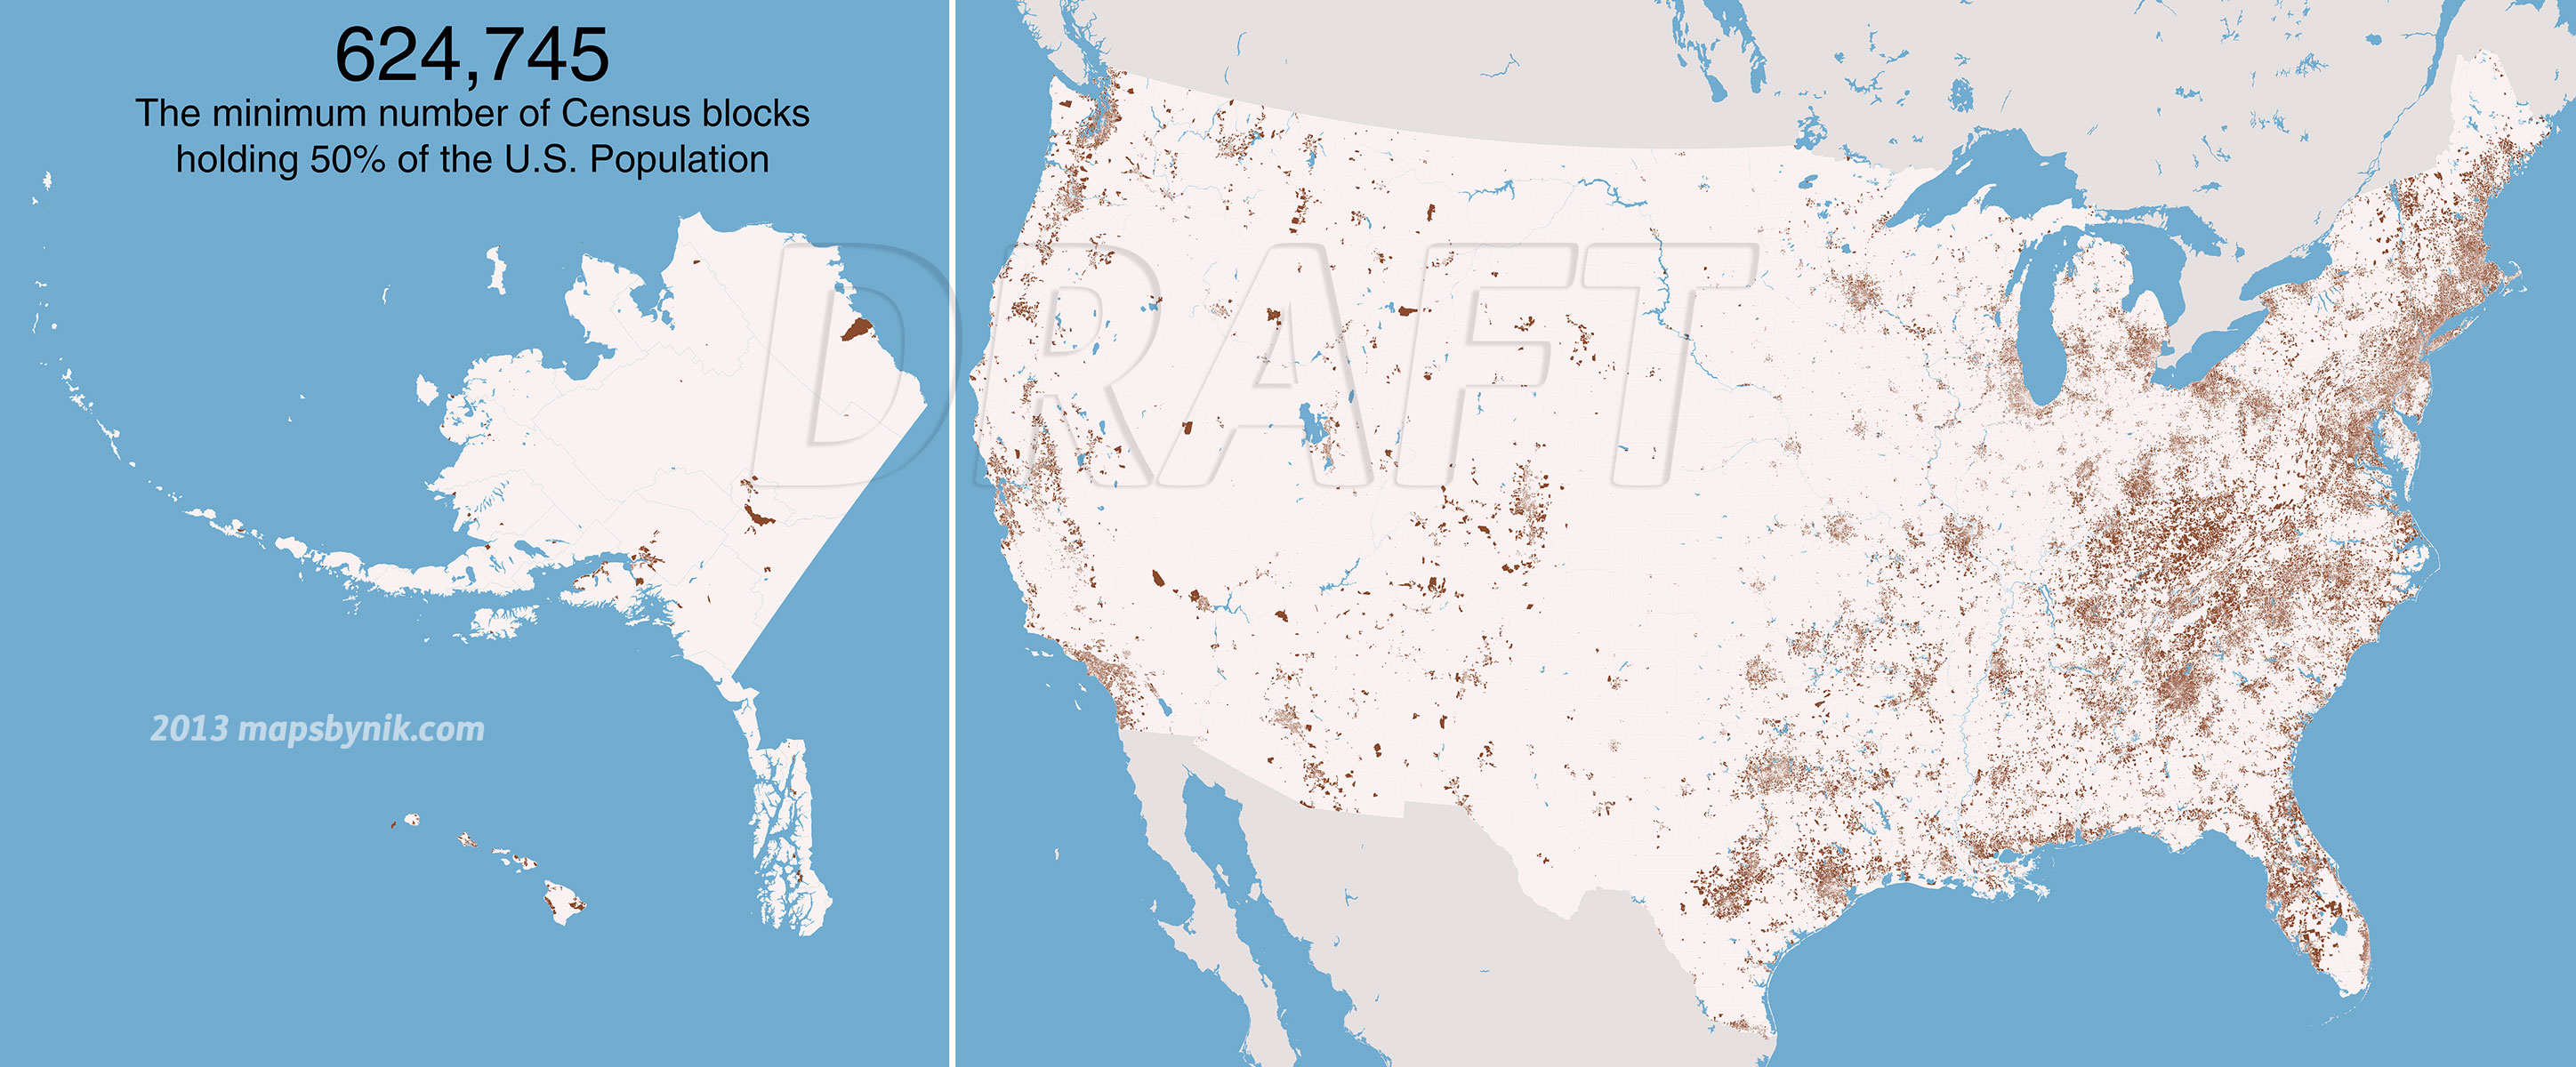 Nobody Lives Here The Nearly Million US Census Blocks With - Us census block map